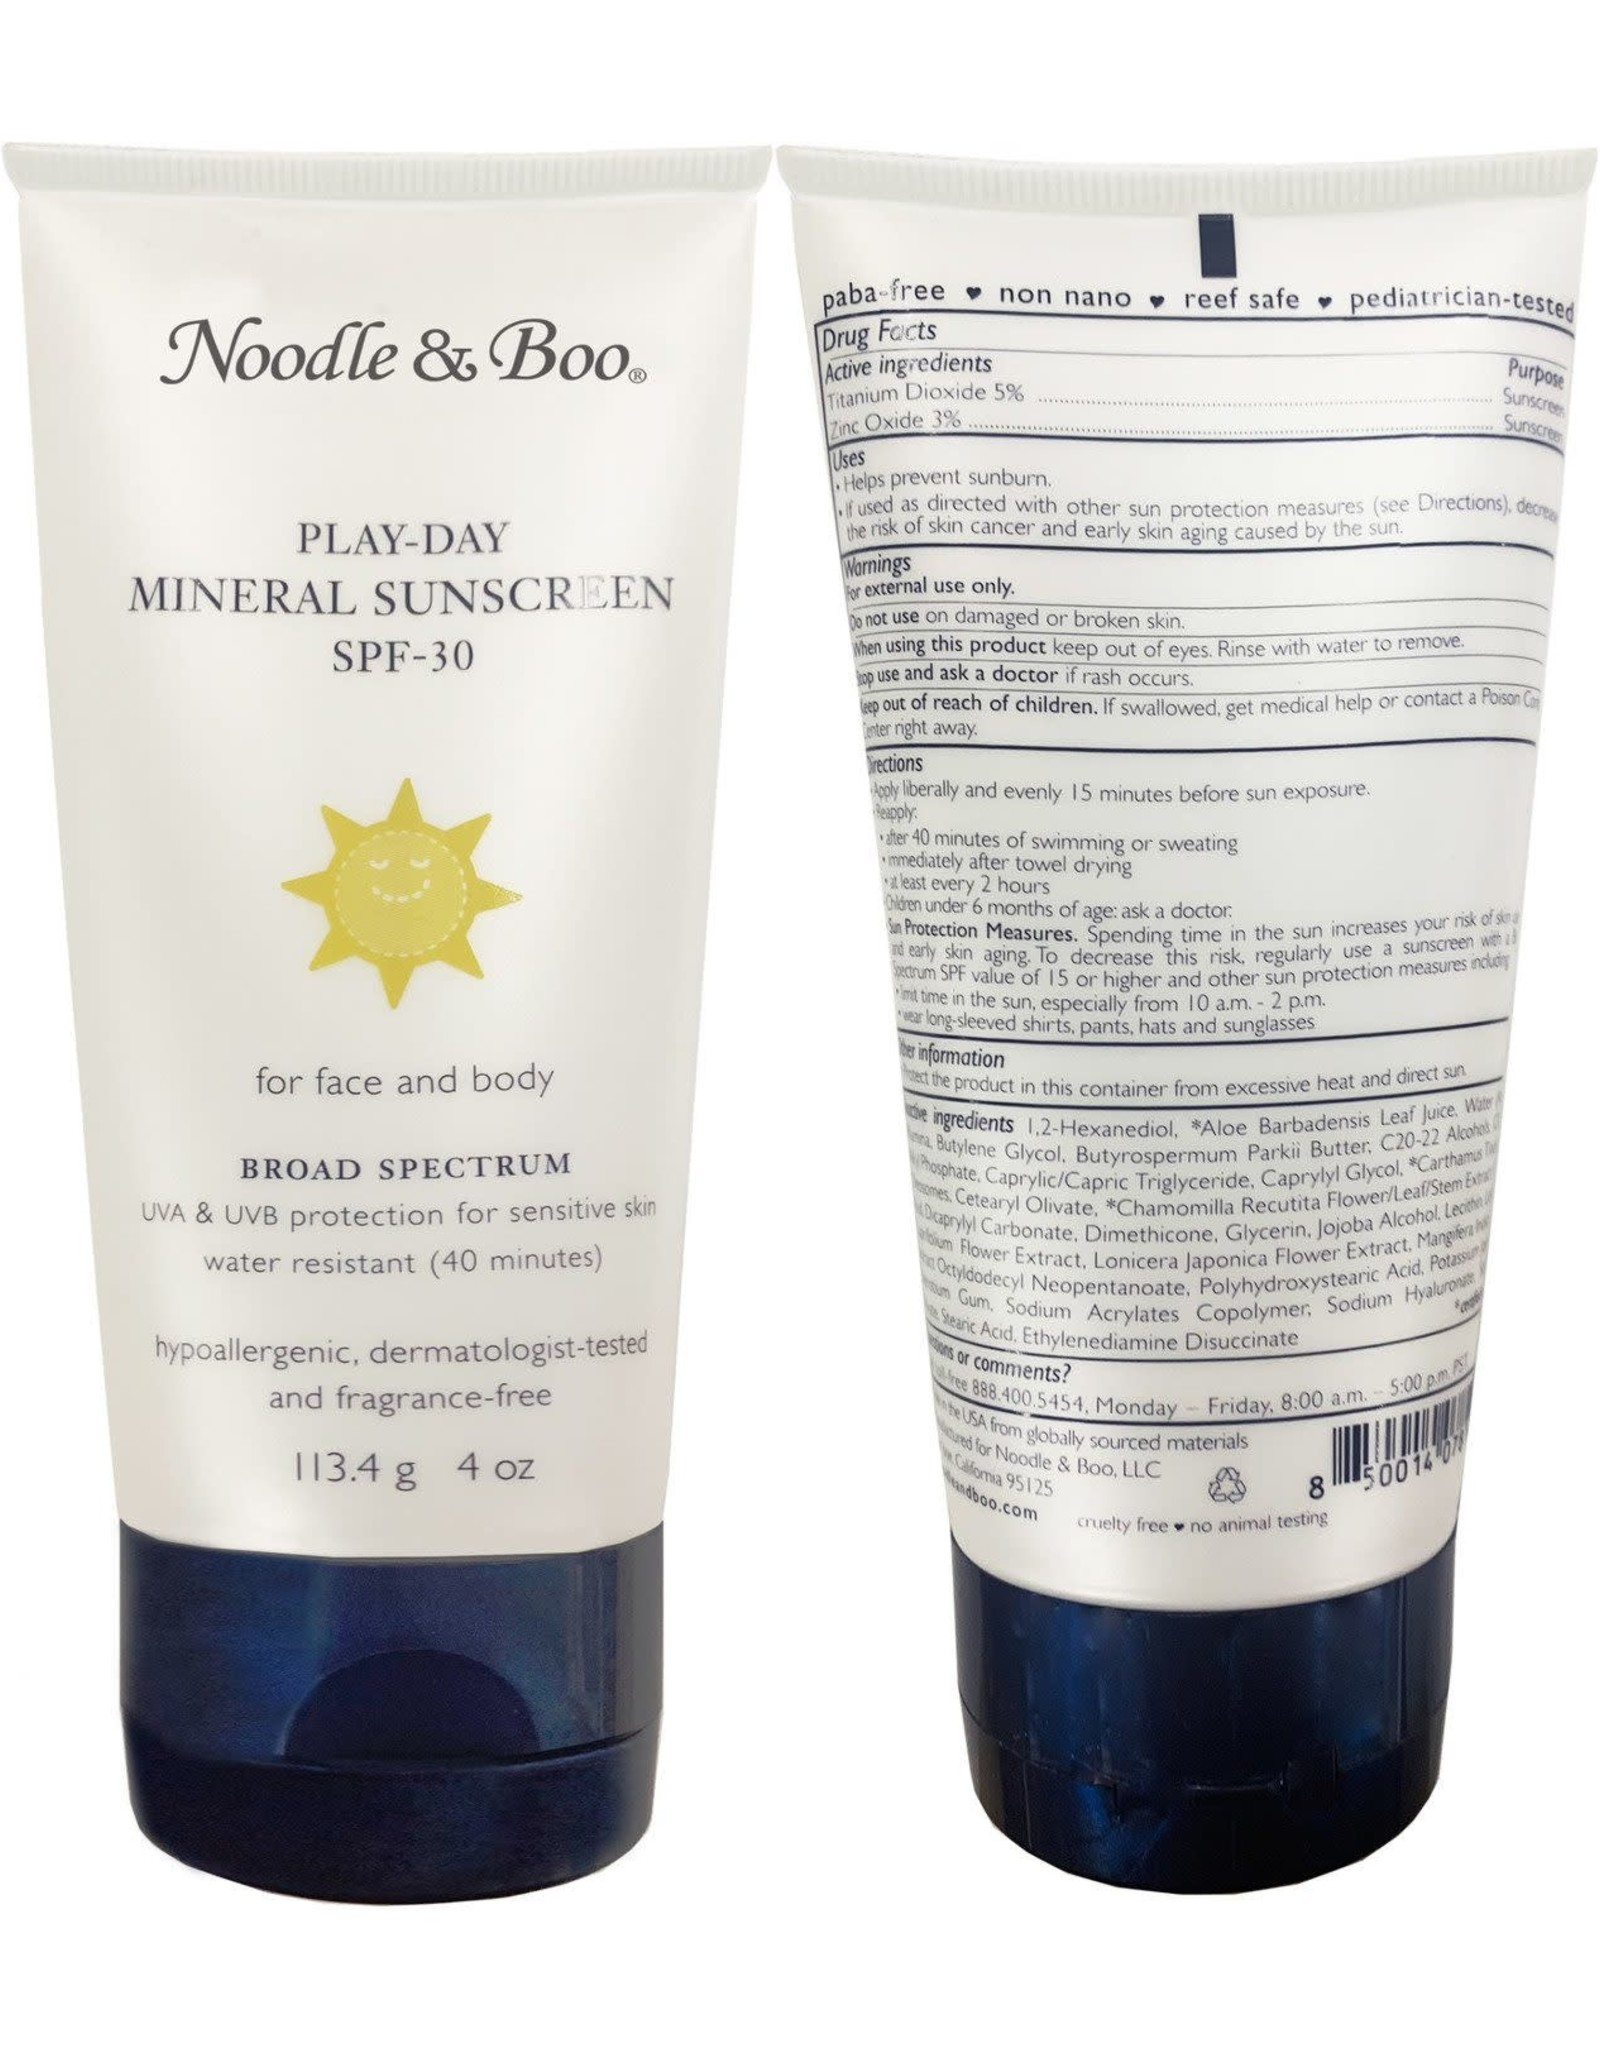 Noodle & Boo Play - Day Mineral Sunscreen